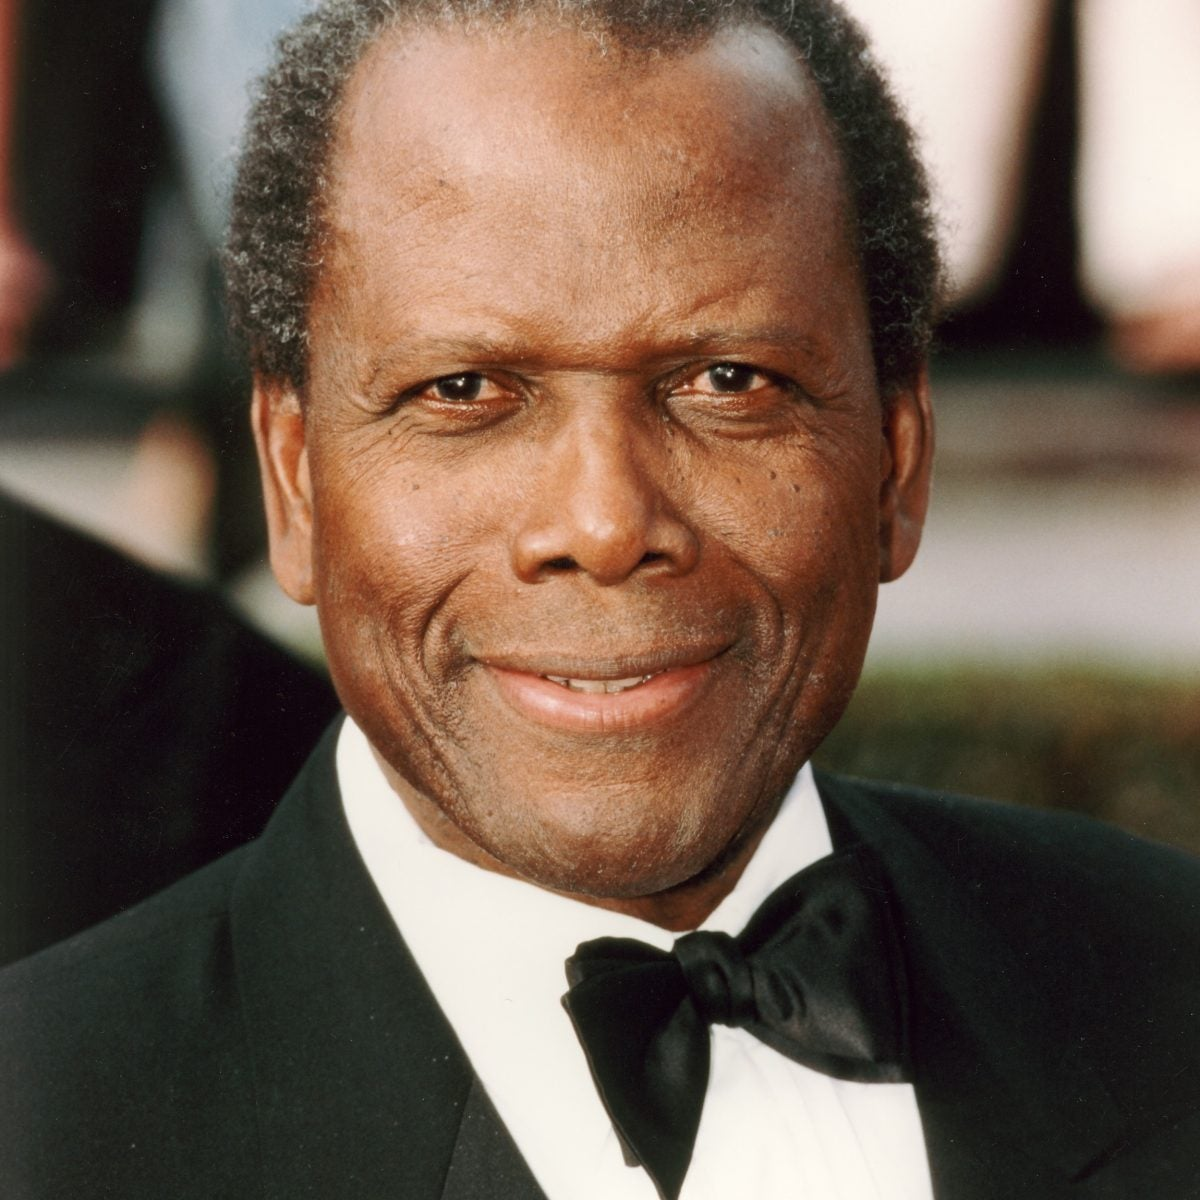 Arizona State University Names New American Film School After Sidney Poitier